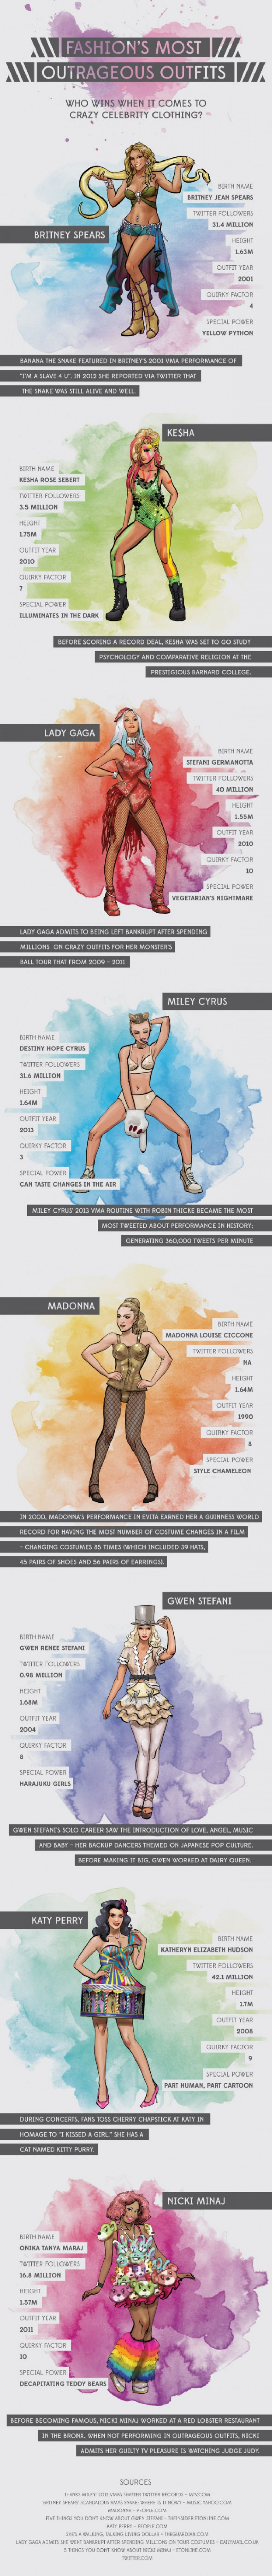 Infographic On The Mega Stars Most Outrageous Fashion Outfits Infographic